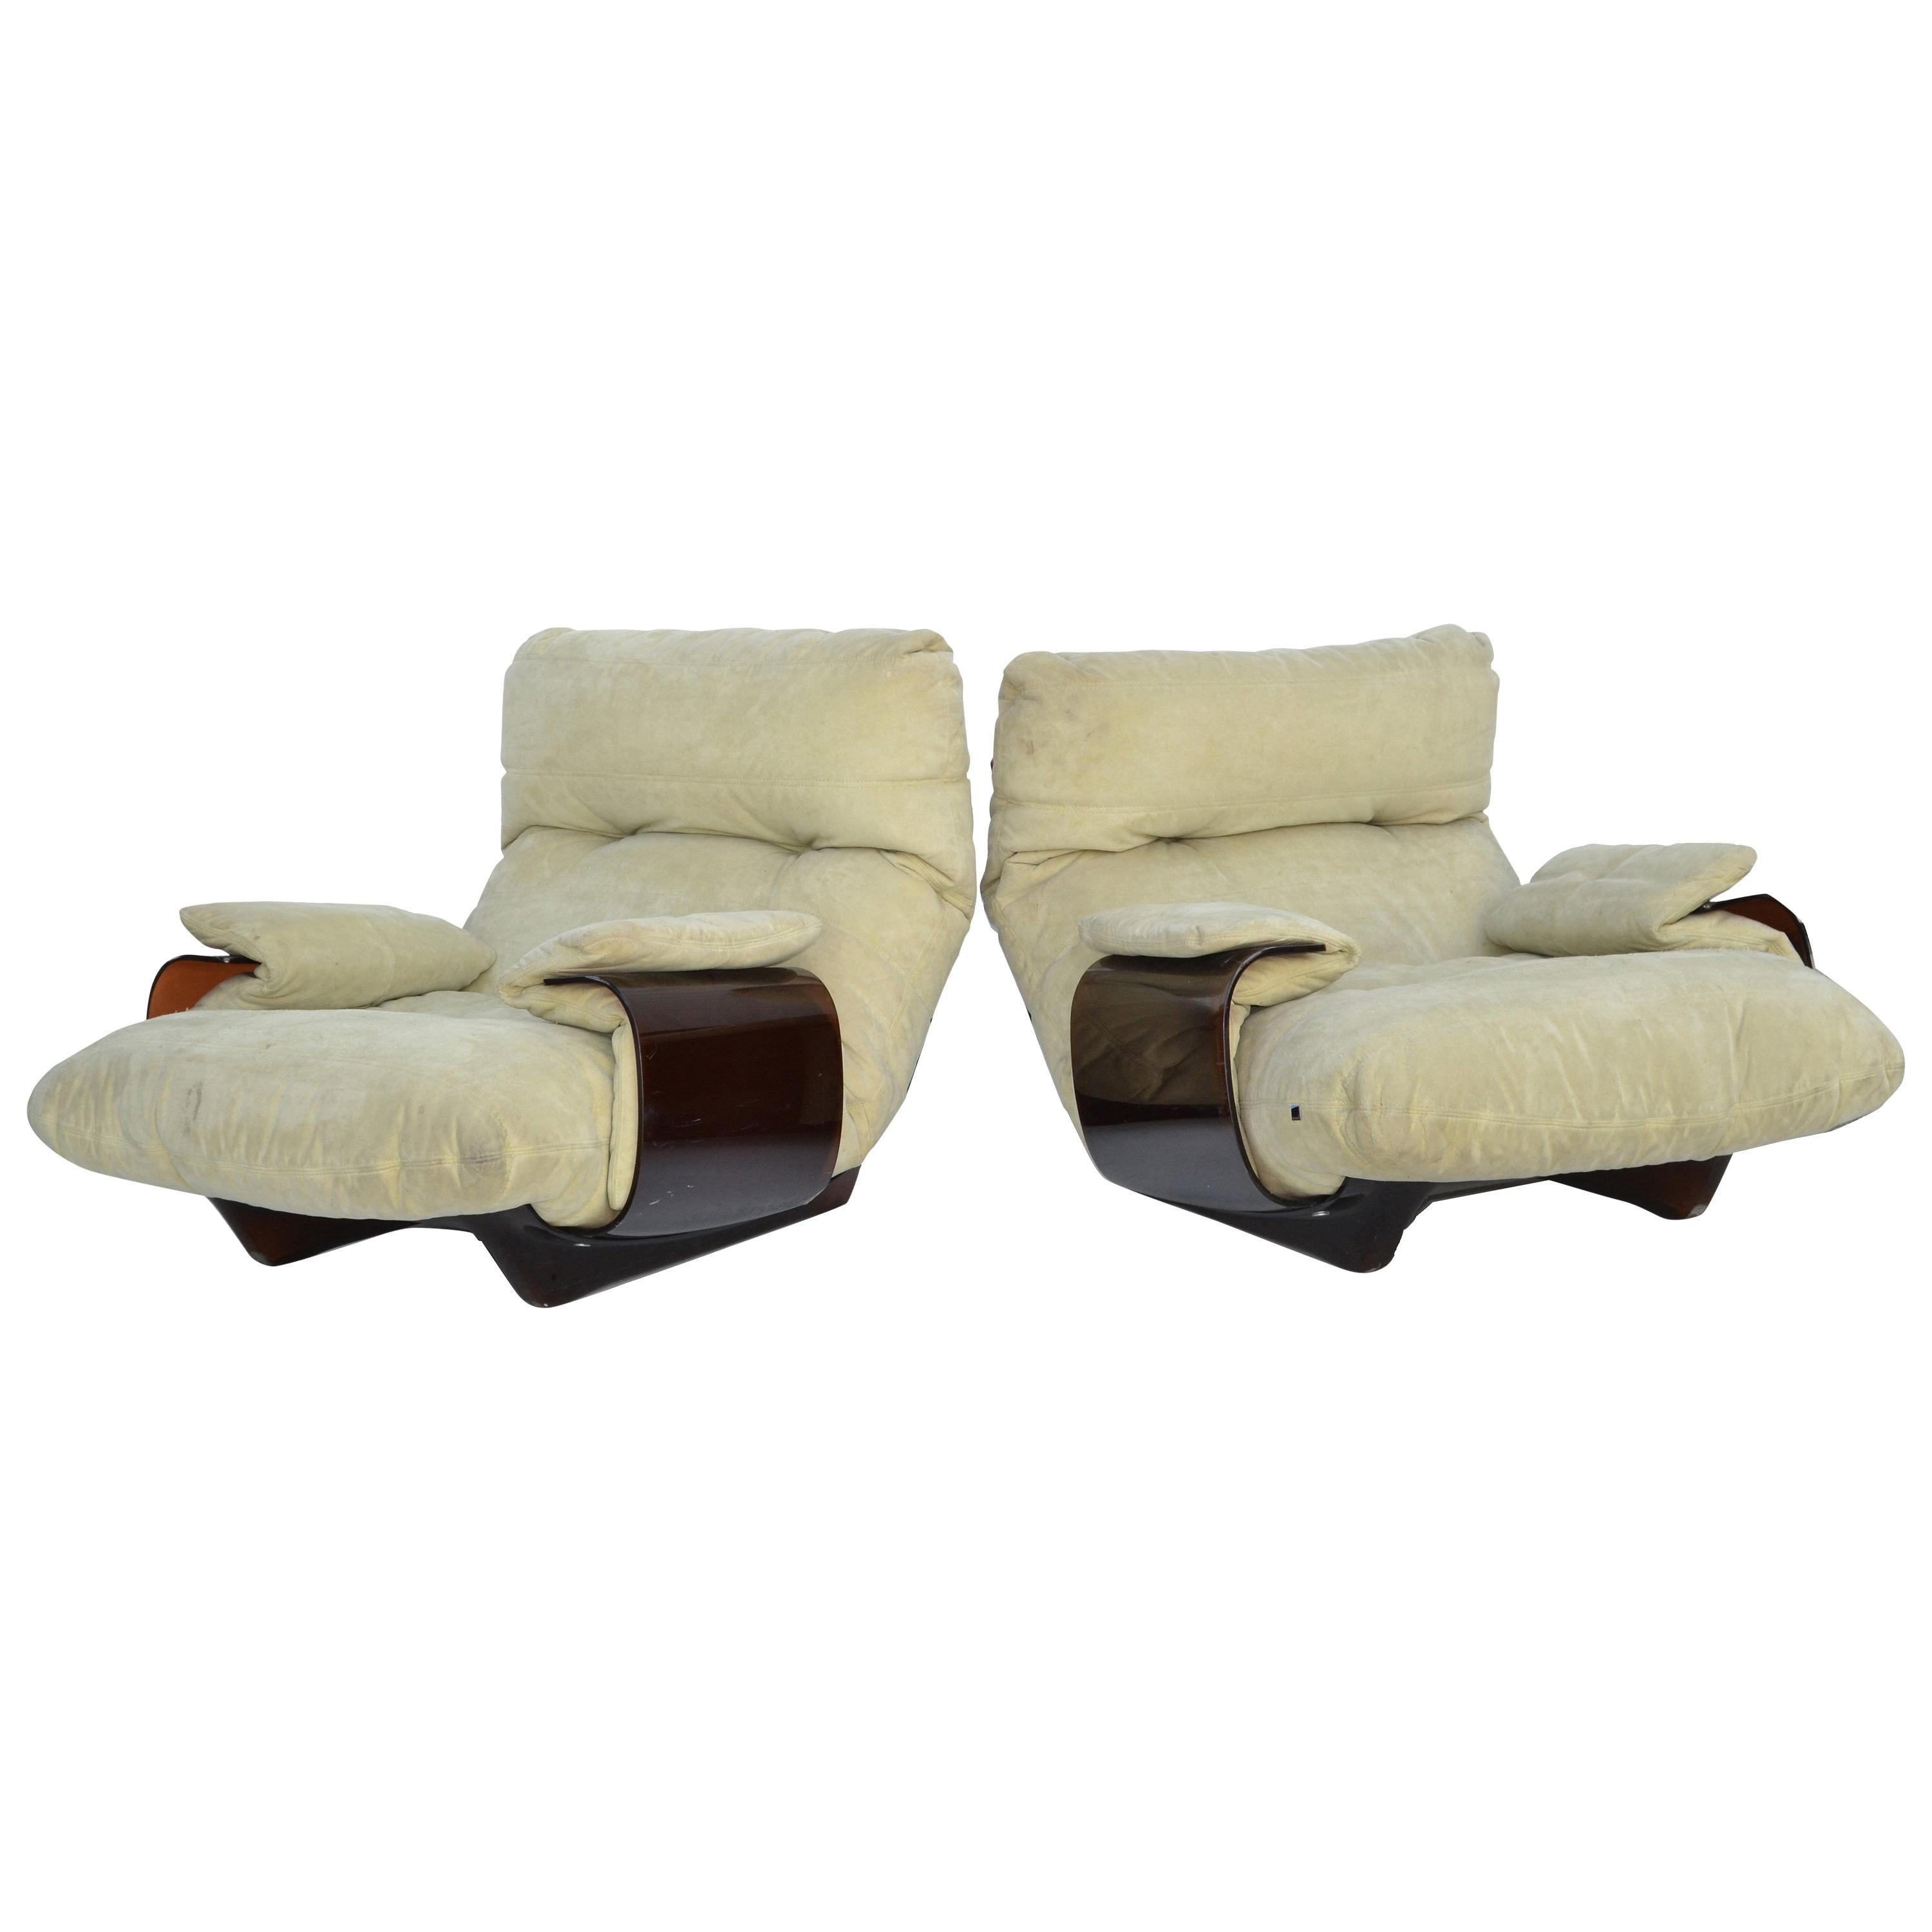 Michel Ducaroy 'Marsala' Ultra-Suede and Bronze Lucite Lounge Chairs, Pair